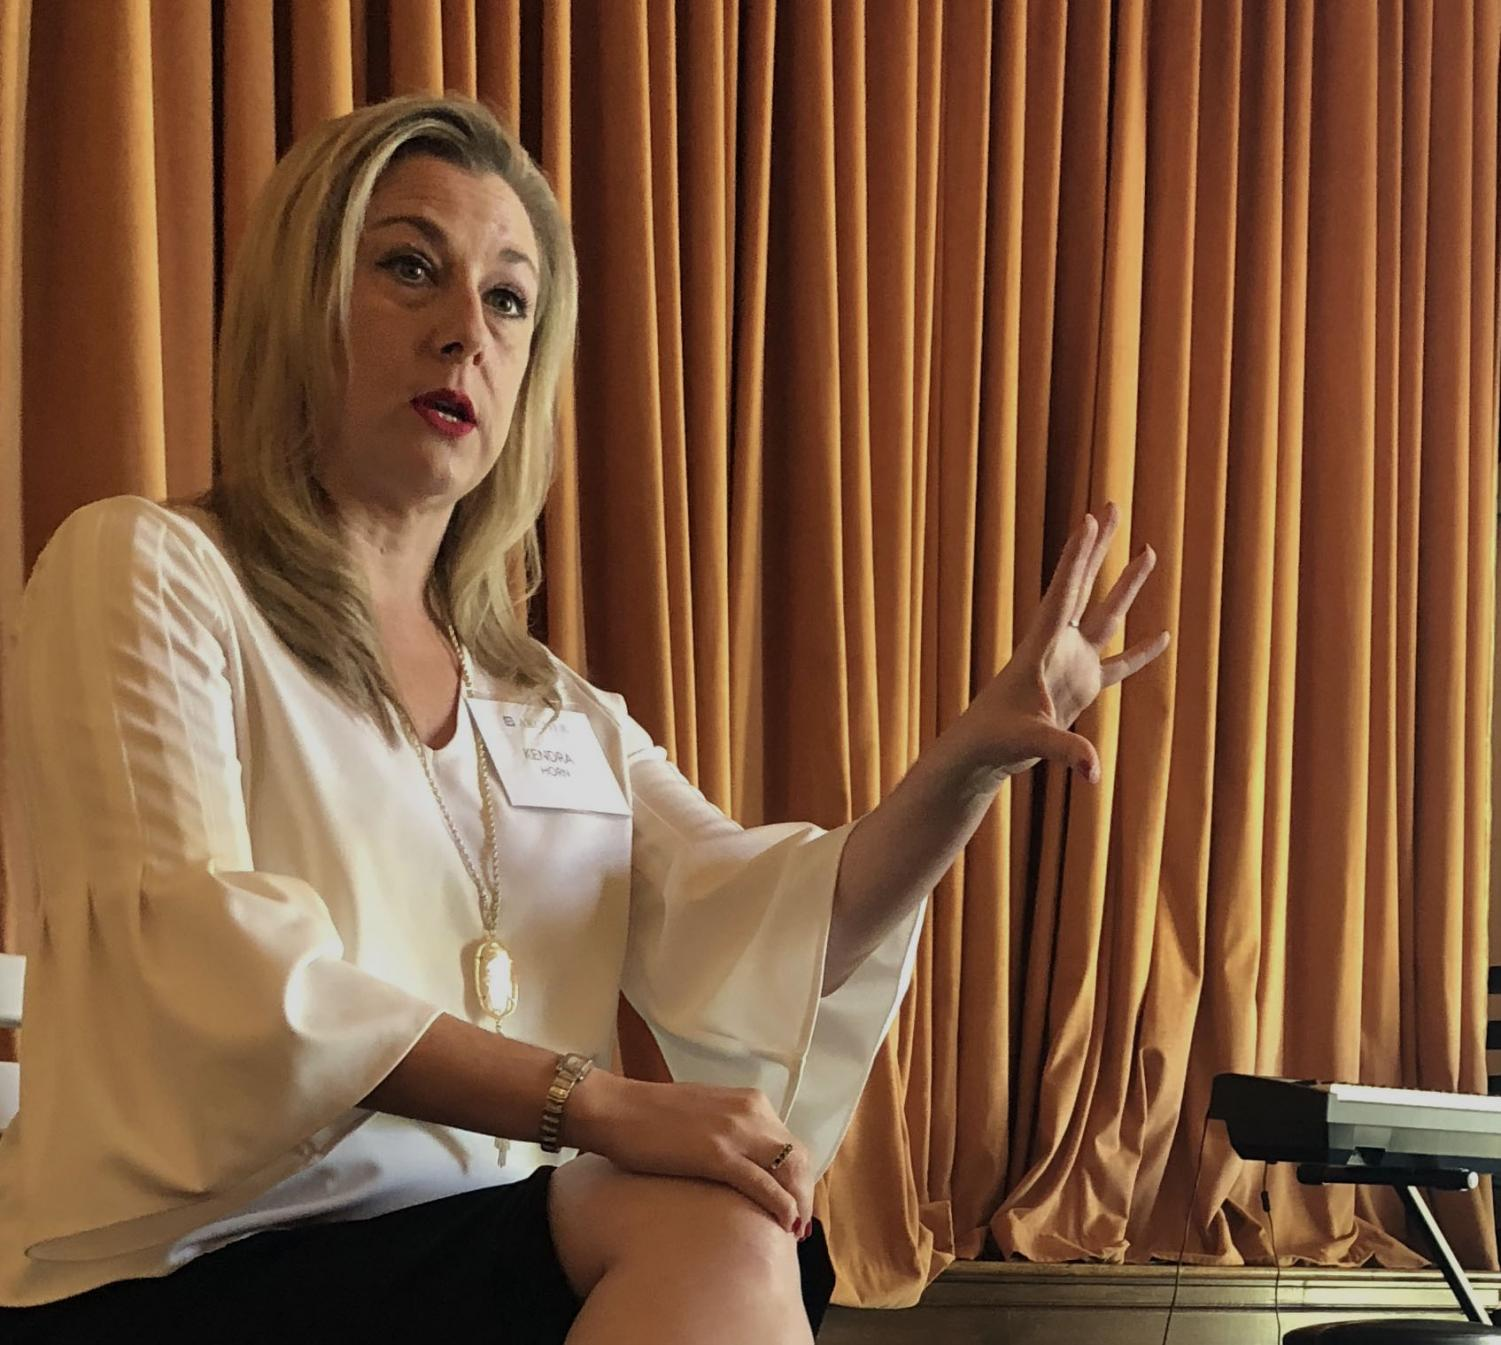 Kendra Horn speaks to the student body during lunch about women in politics. She is running to be the representative of Oklahoma's Fifth Congressional District.